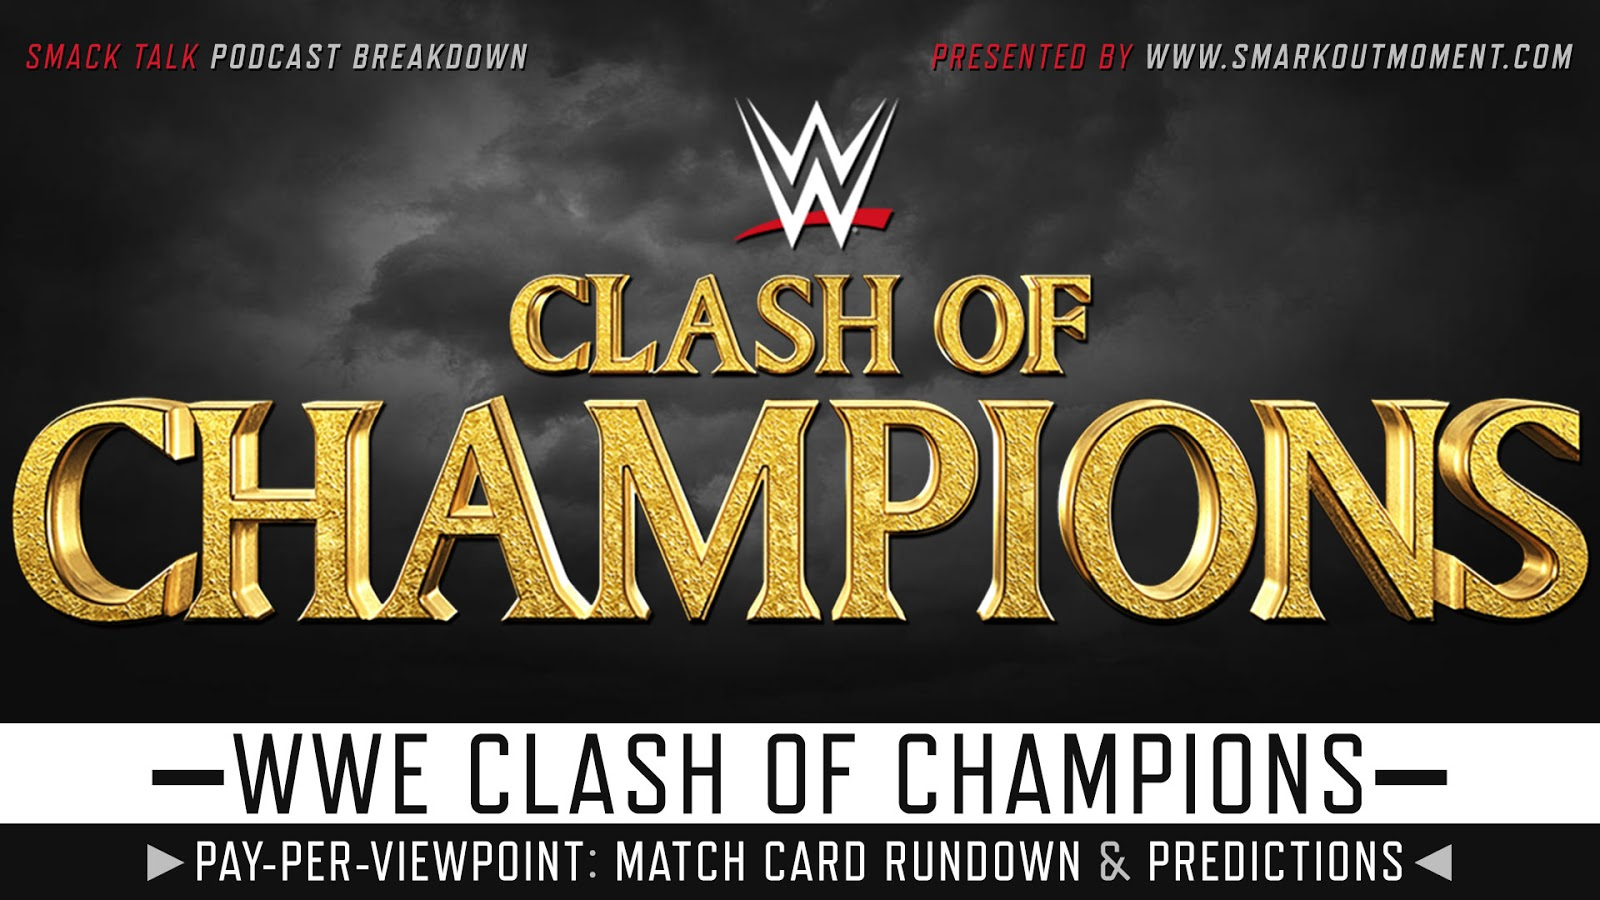 WWE Clash of Champions 2019 spoilers podcast